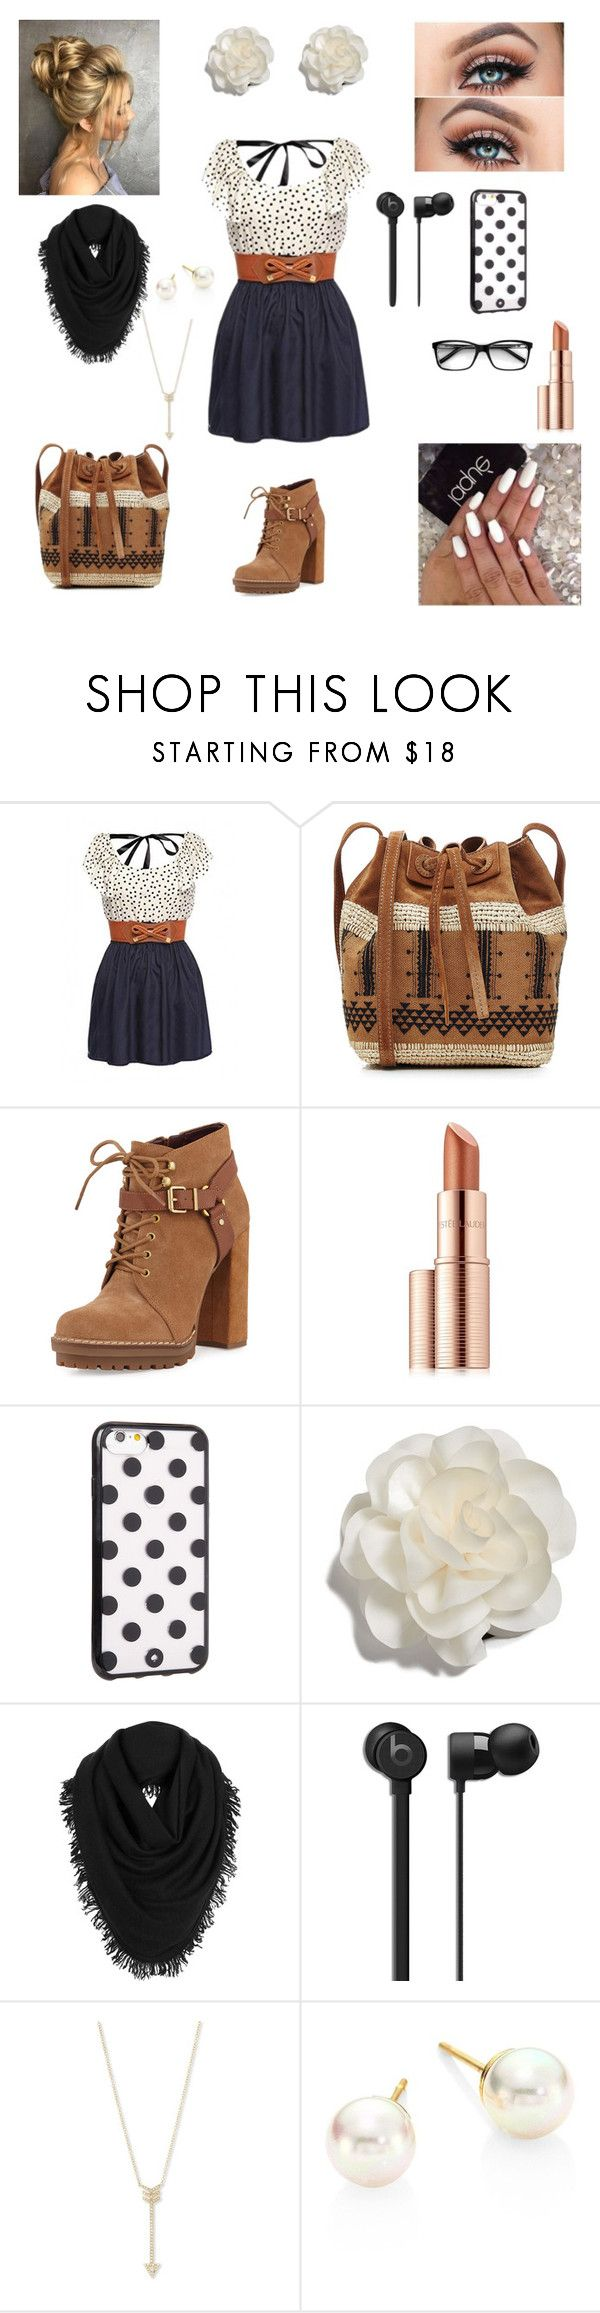 """Cute and Casual Outfit"" by fangirlral ❤ liked on Polyvore featuring WithChic, Vanessa Bruno, BCBGeneration, Estée Lauder, Kate Spade, Cara, White + Warren, EF Collection and Majorica"